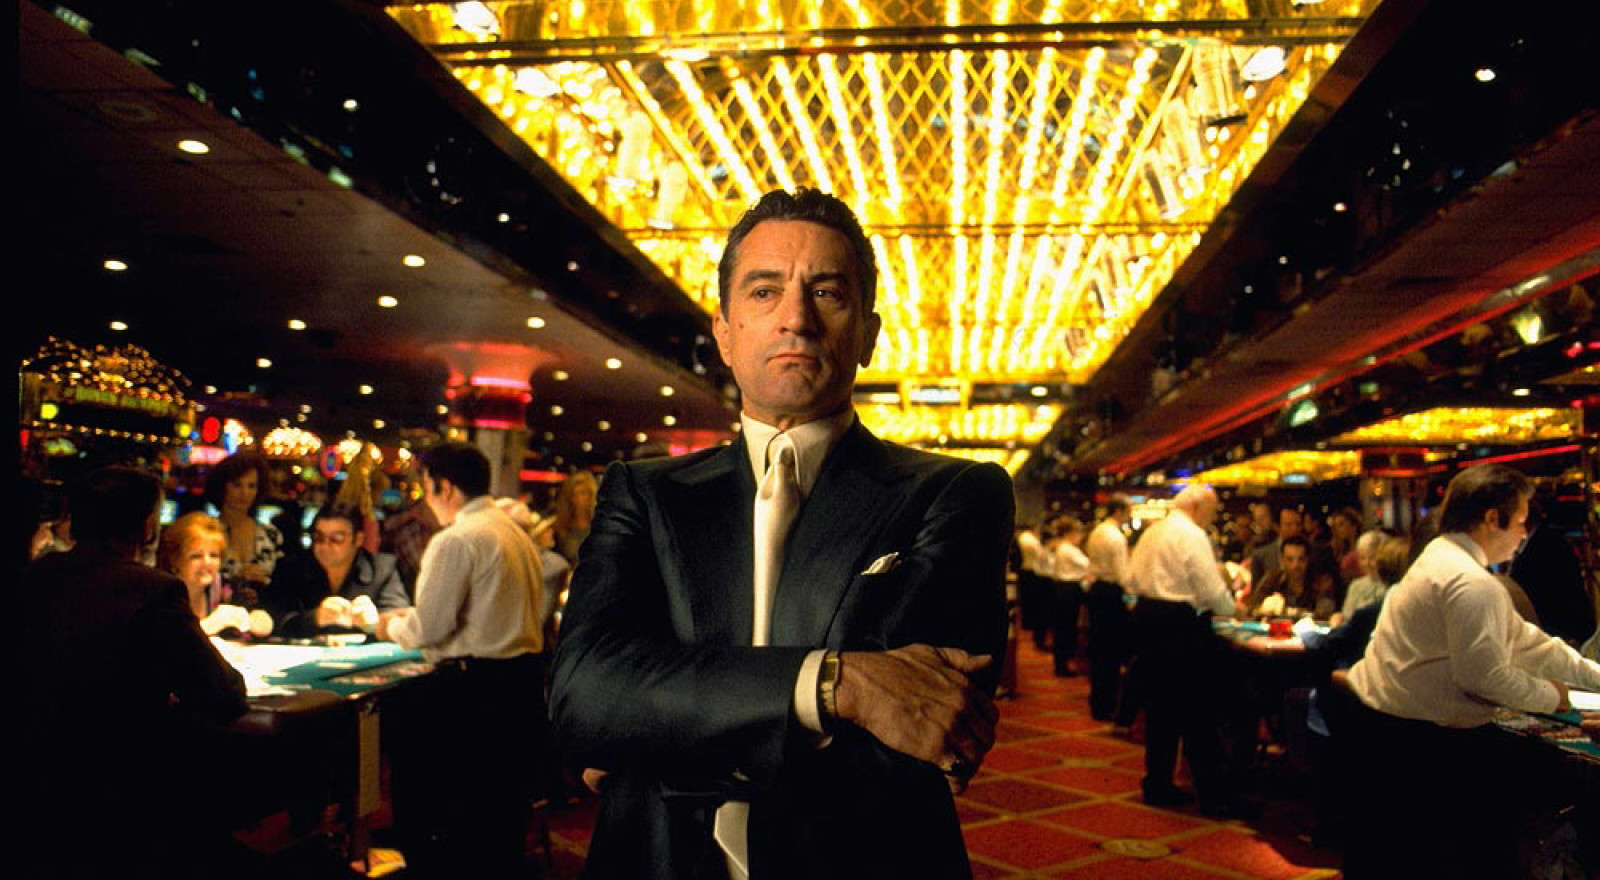 Casino-1995-Robert-De-Niro-as-Sam-Ace-Ro